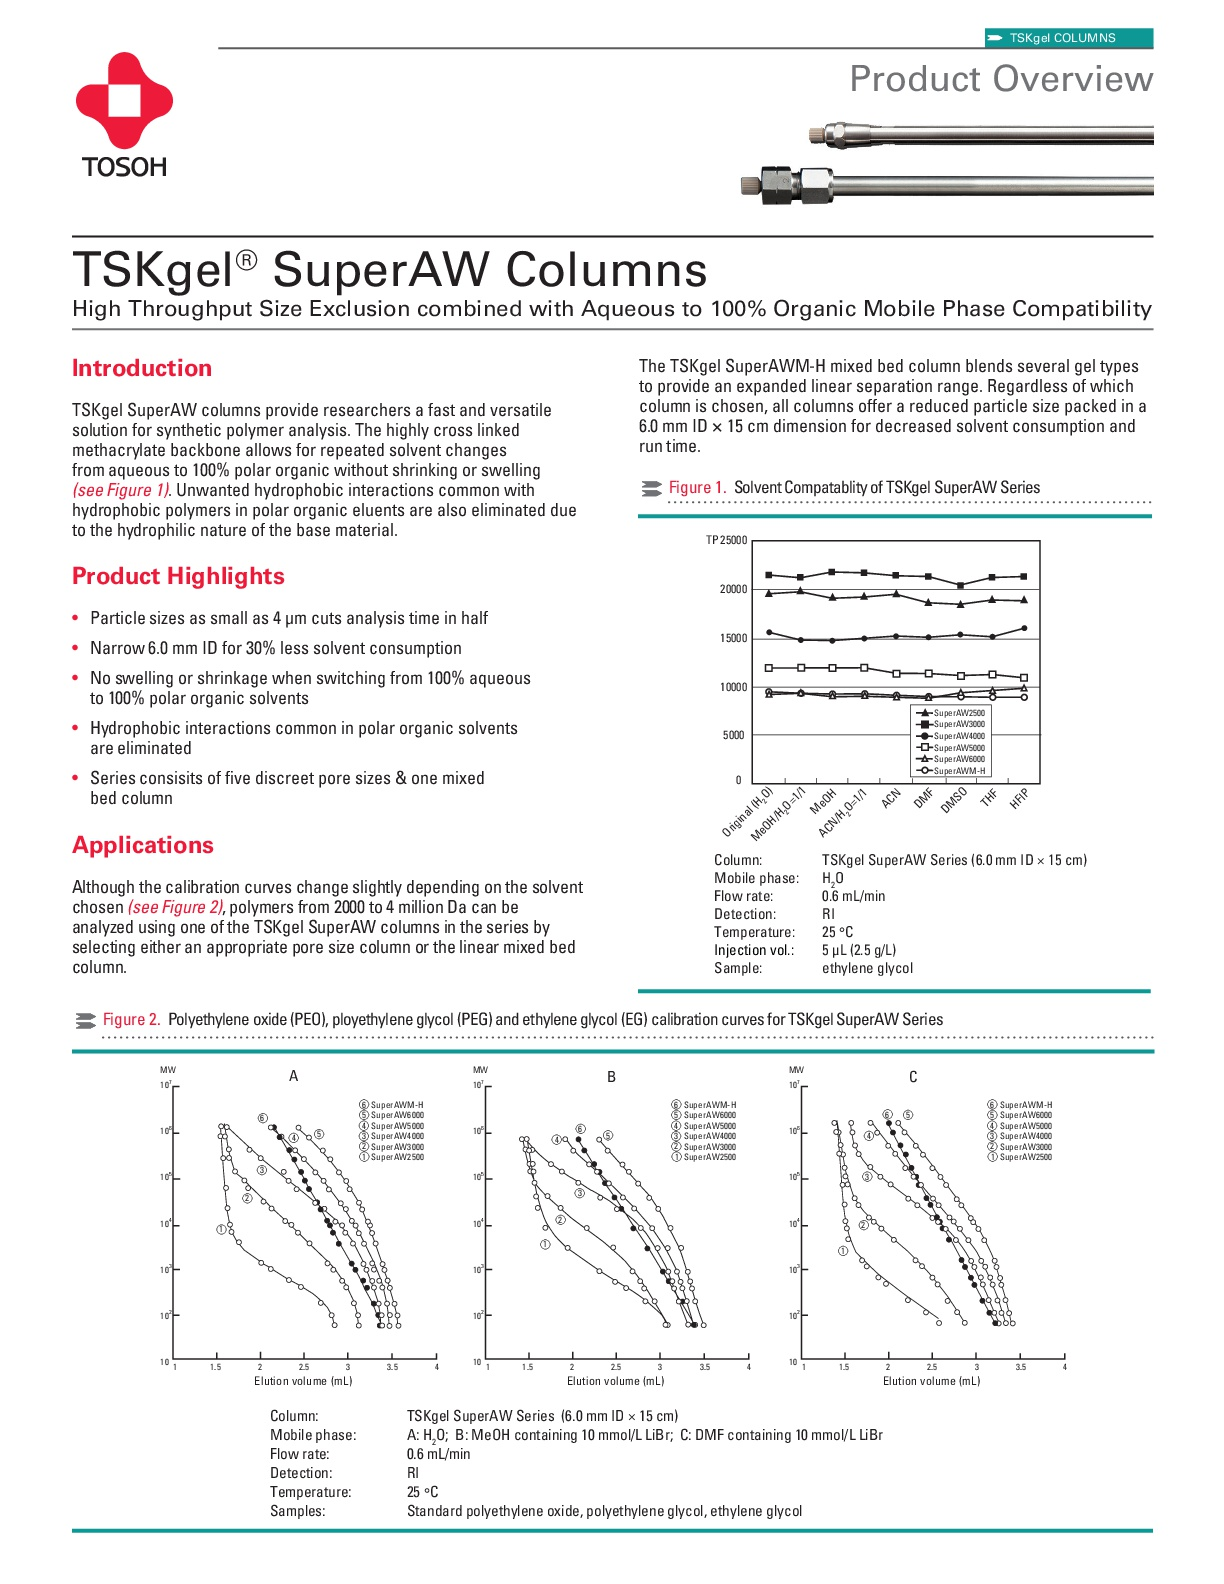 TSKgel SuperAW - Tosoh Bioscience